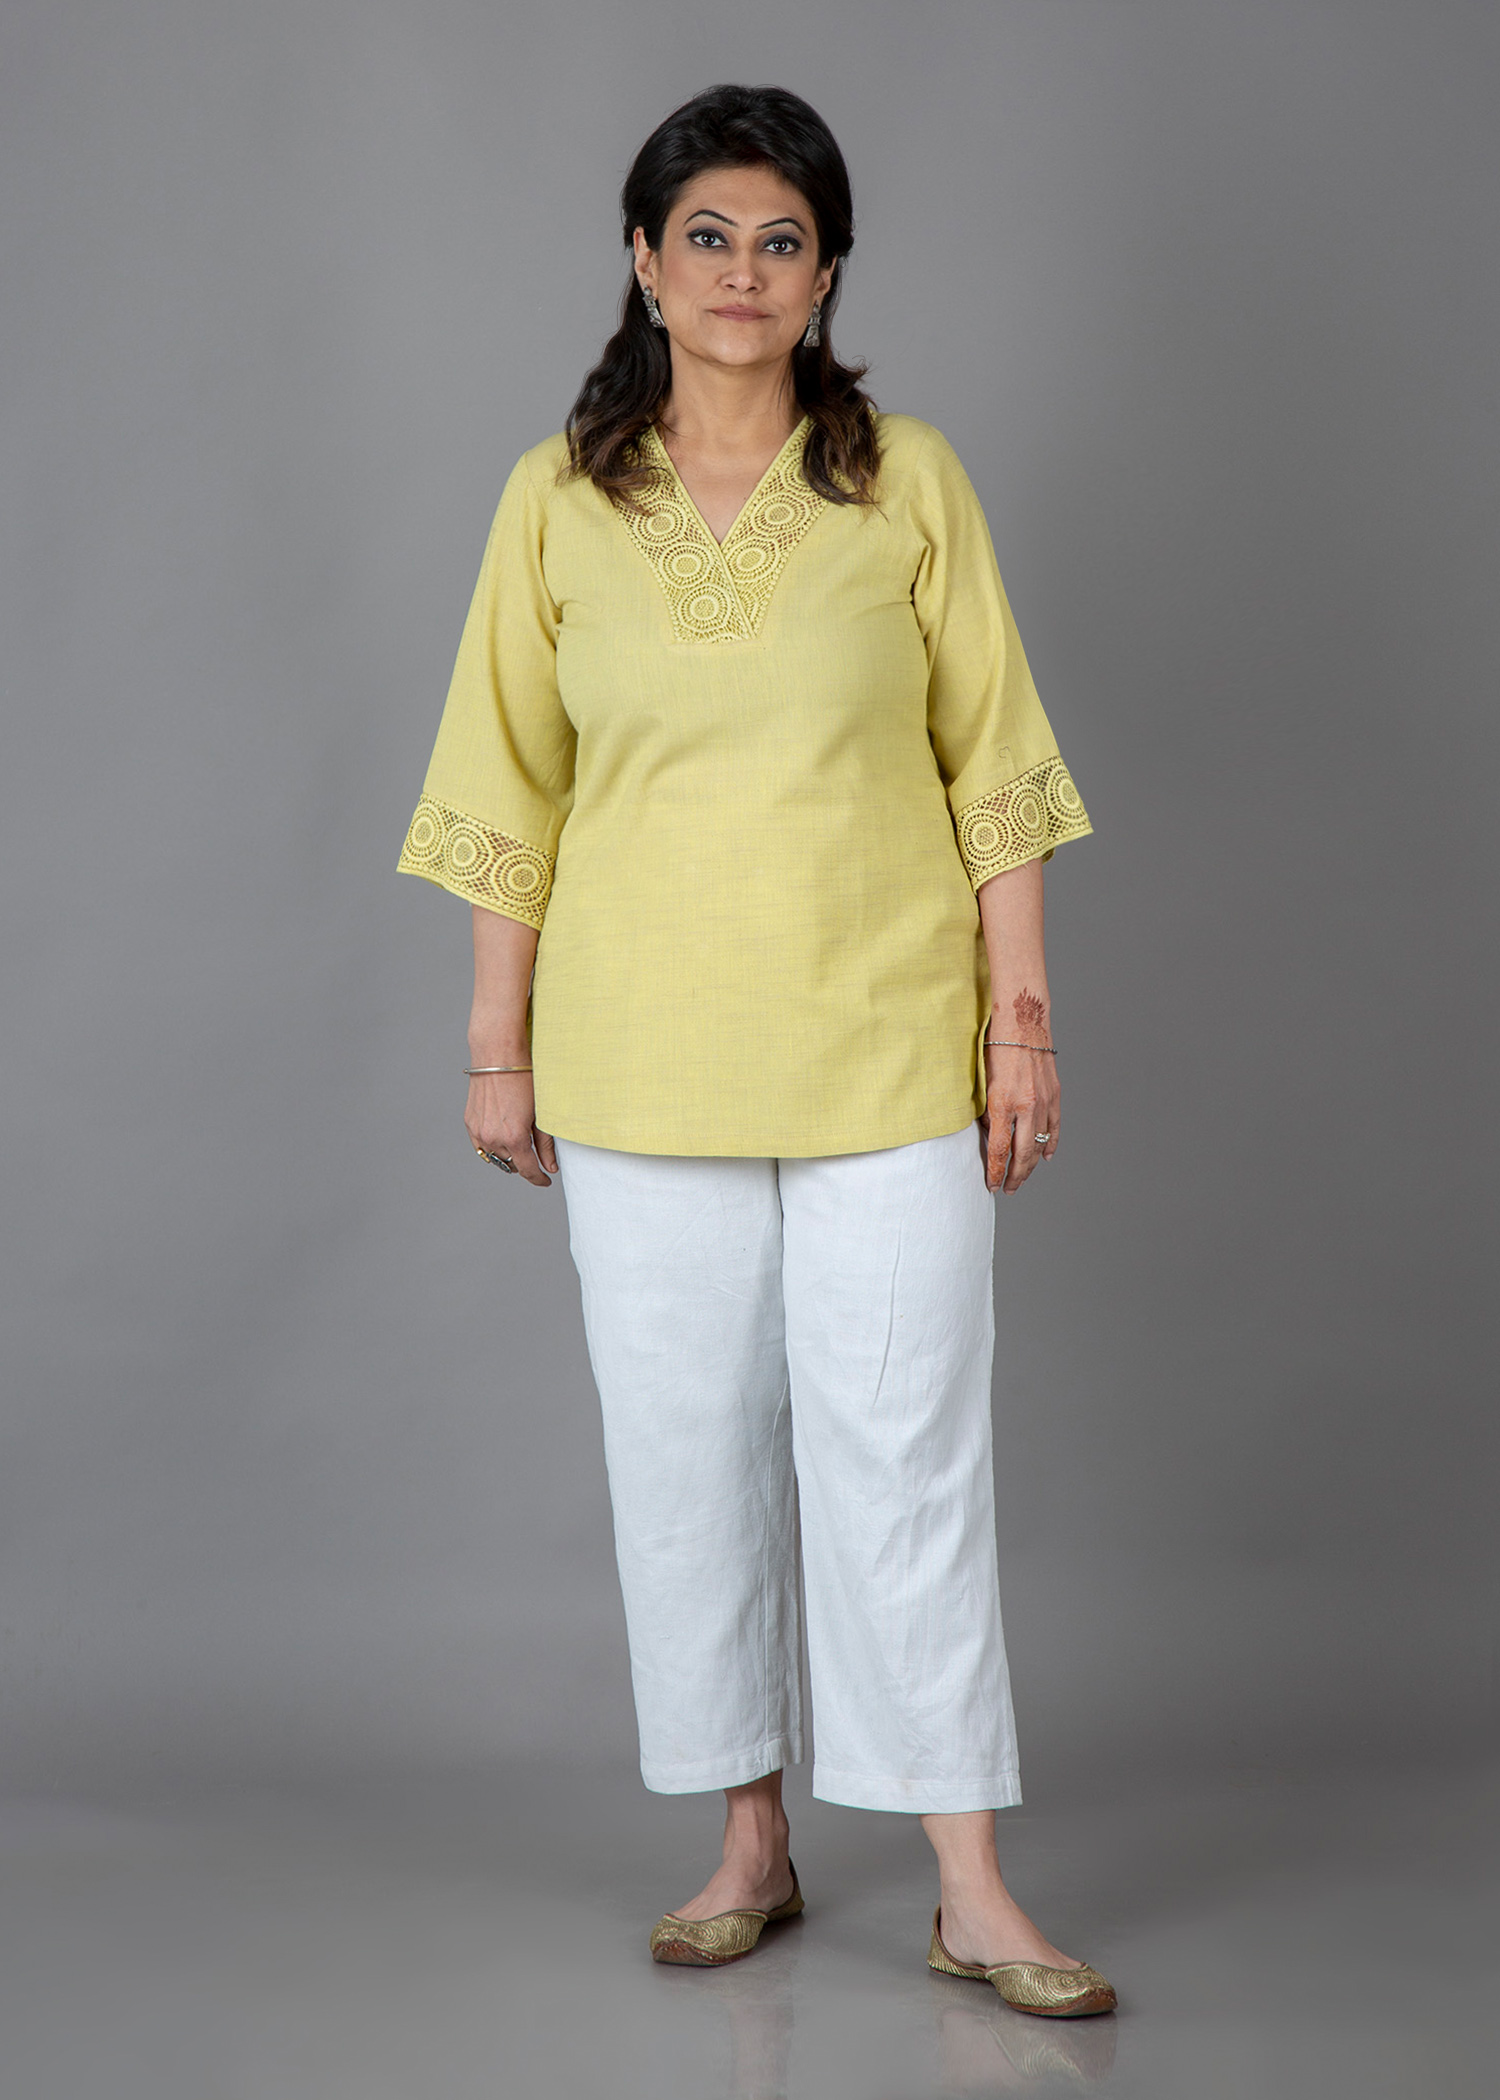 Butter Lace Handwoven Slub Cotton Top